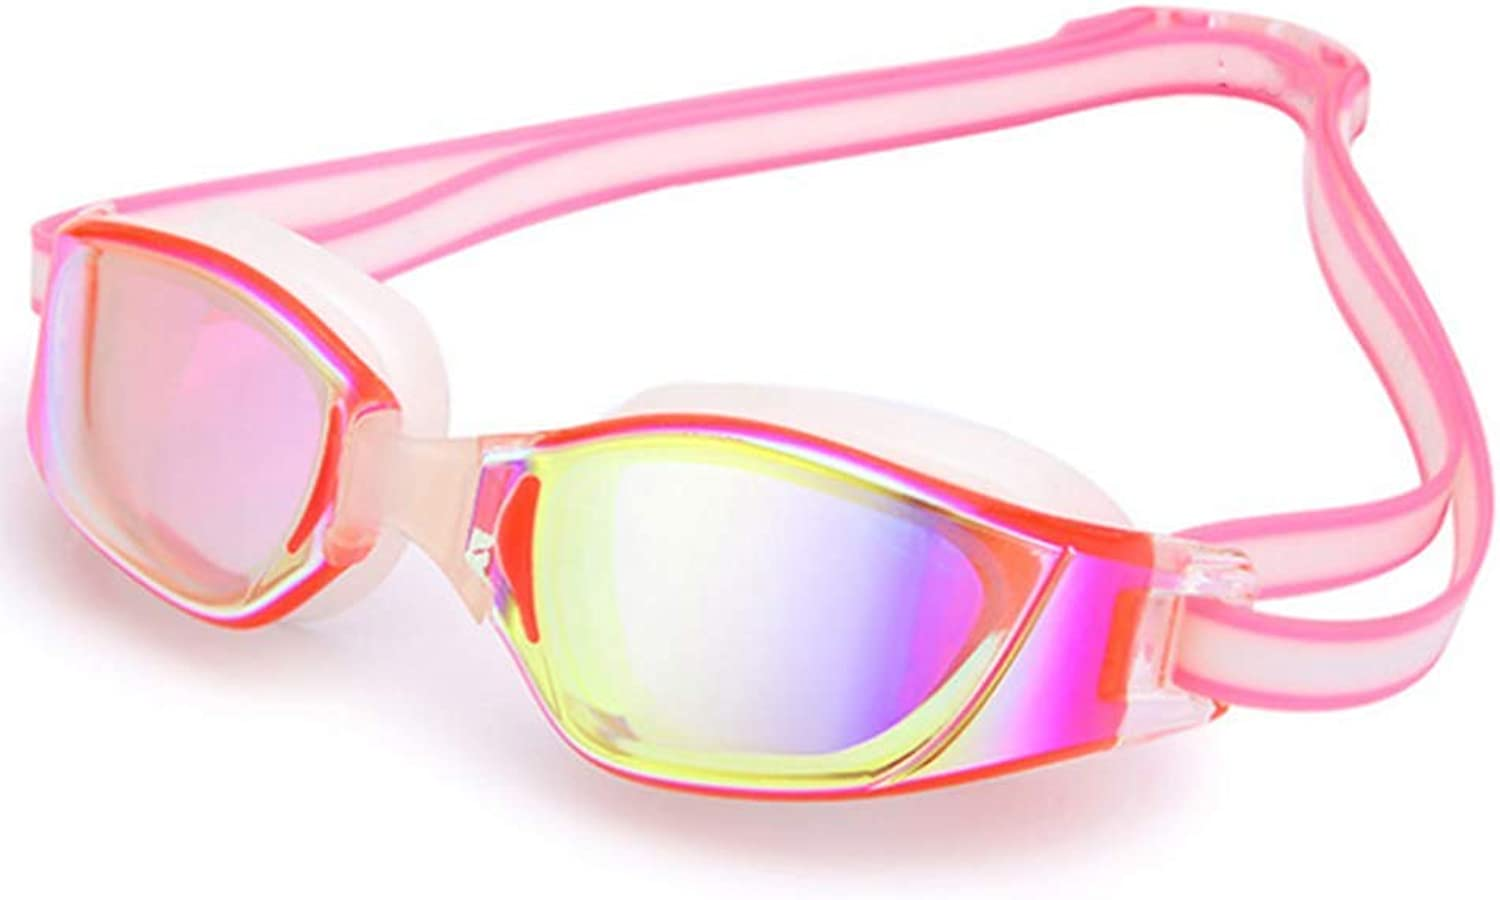 HD Sports Goggles AntiFog Lens Waterproof AntiUV Suitable for Adult Male Female deep Pink